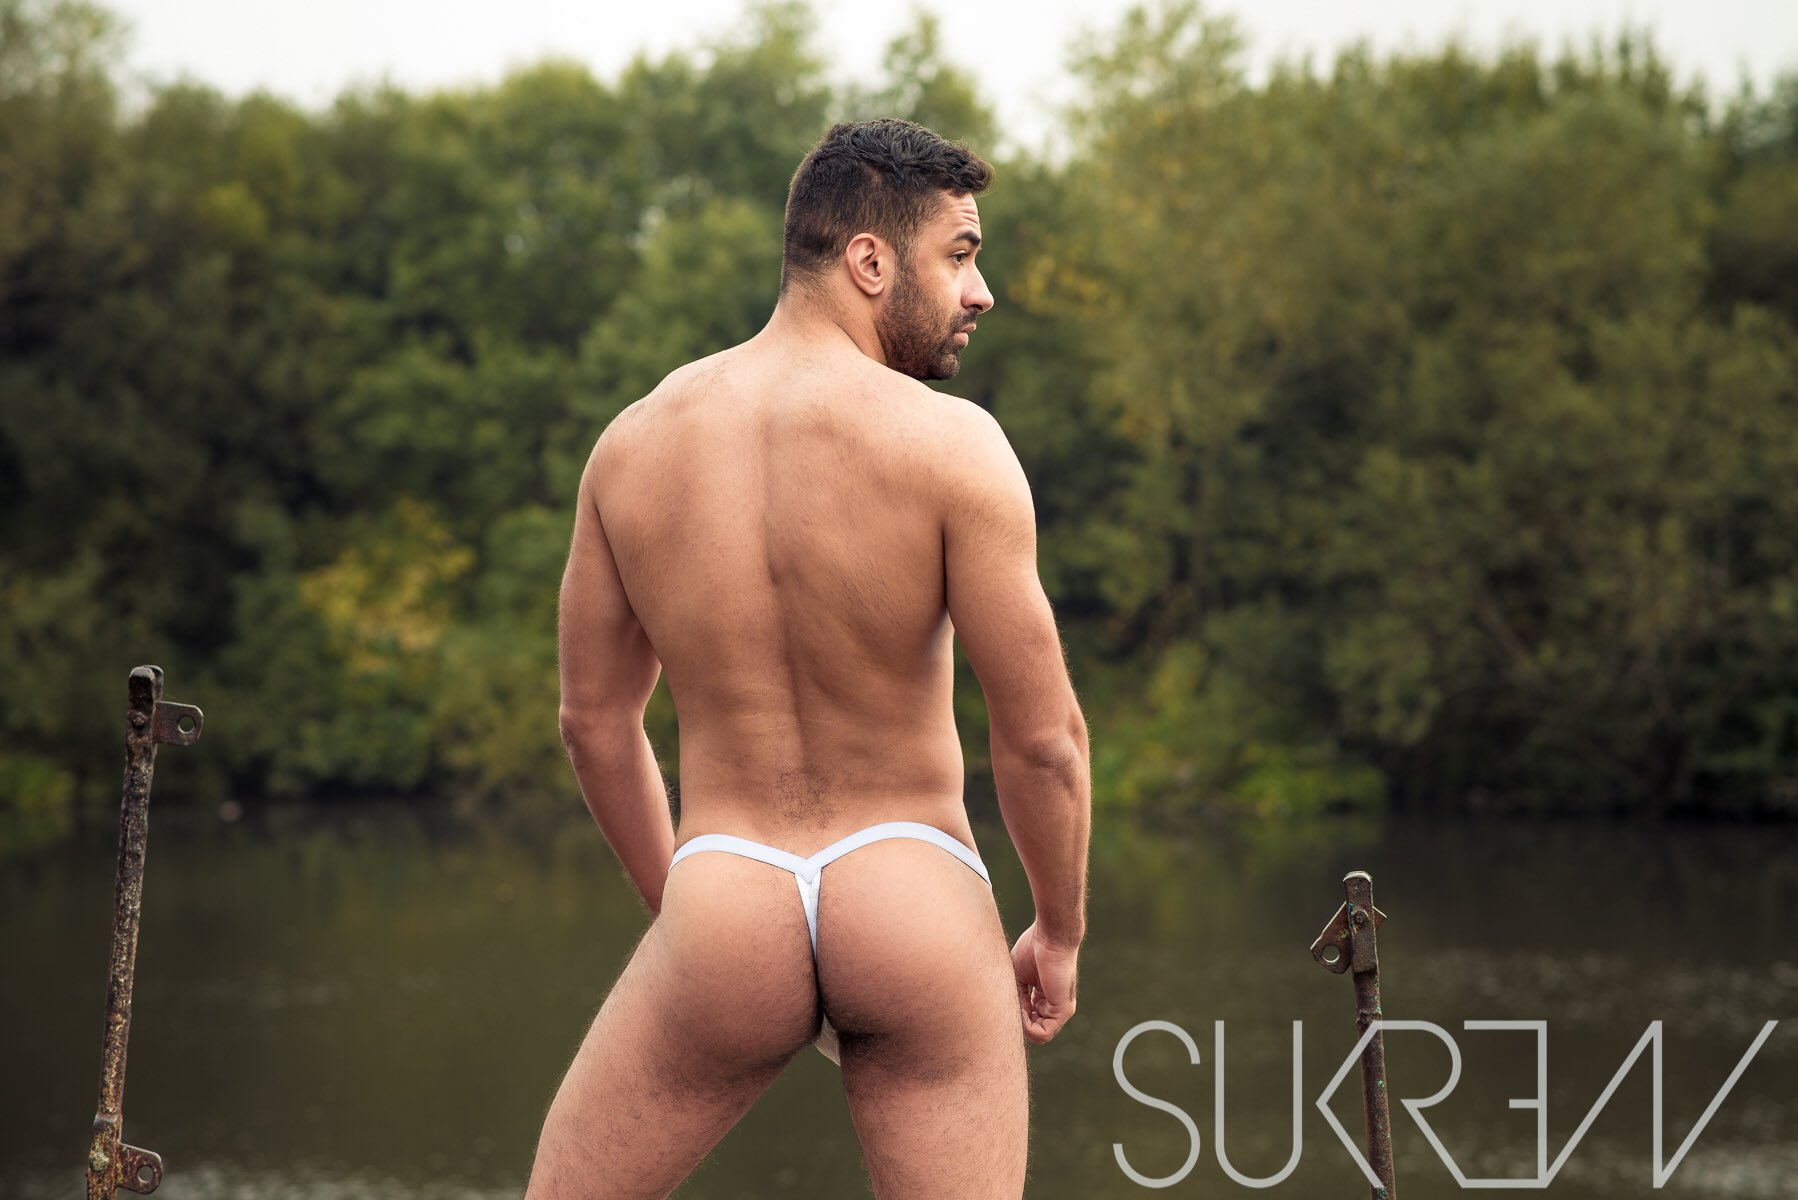 Sukrew releases the Full Bubble